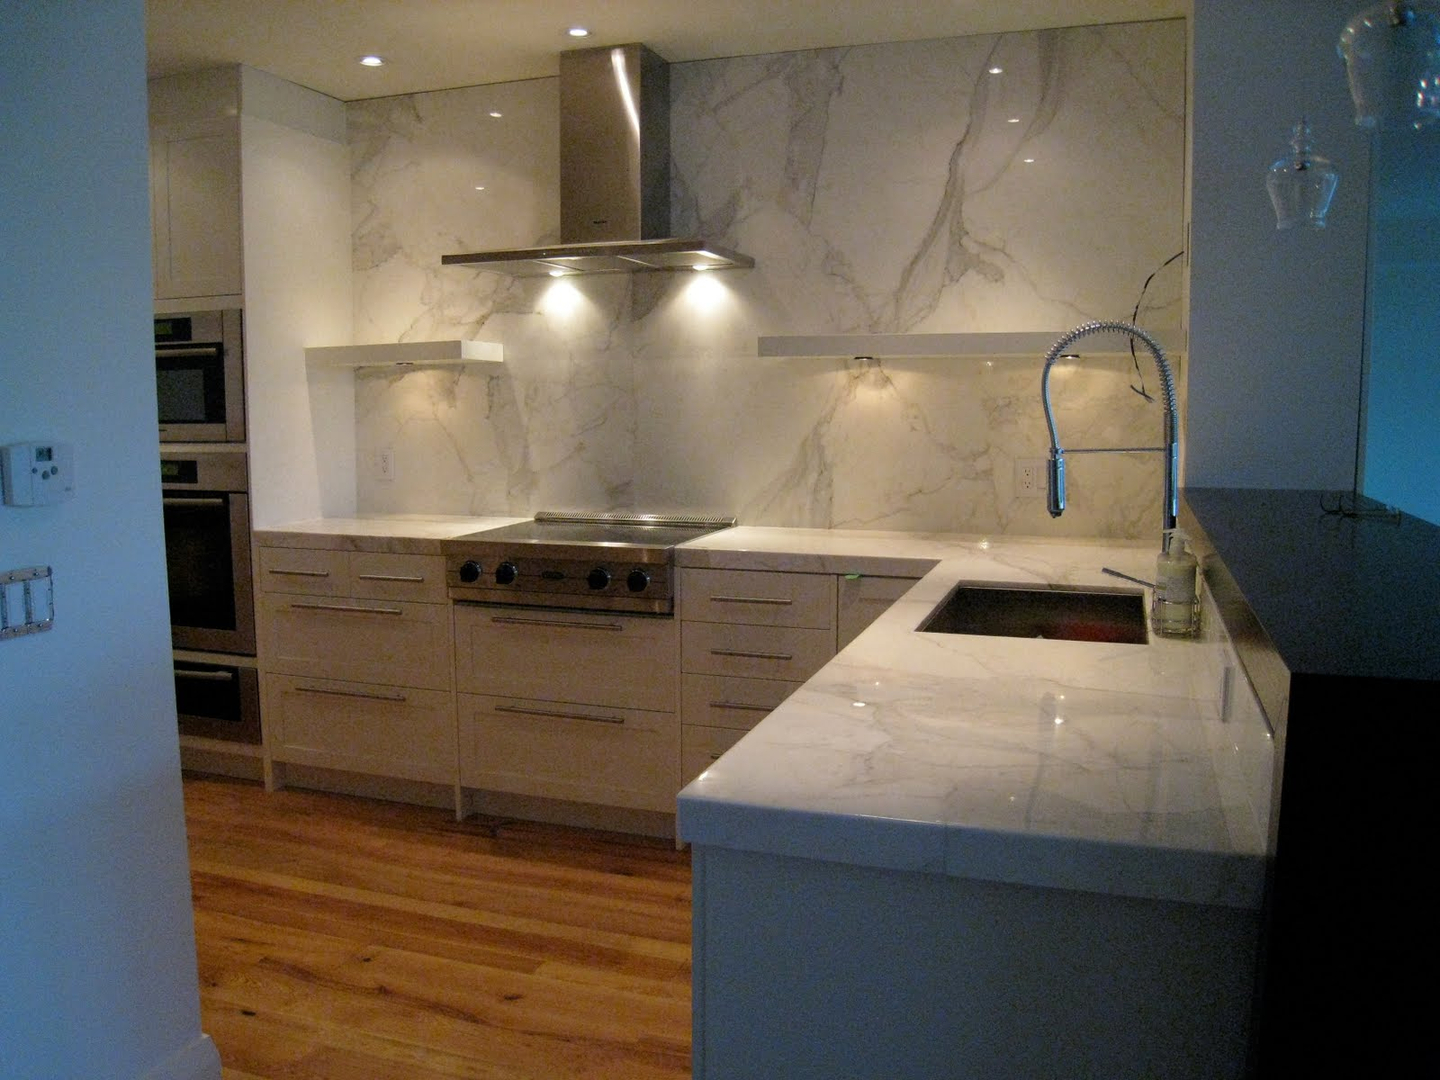 kitchen cabinets kitchen cabinets miami IKEA Kitchen Cabinets Installations in Miami Broward West Palm Beach FL